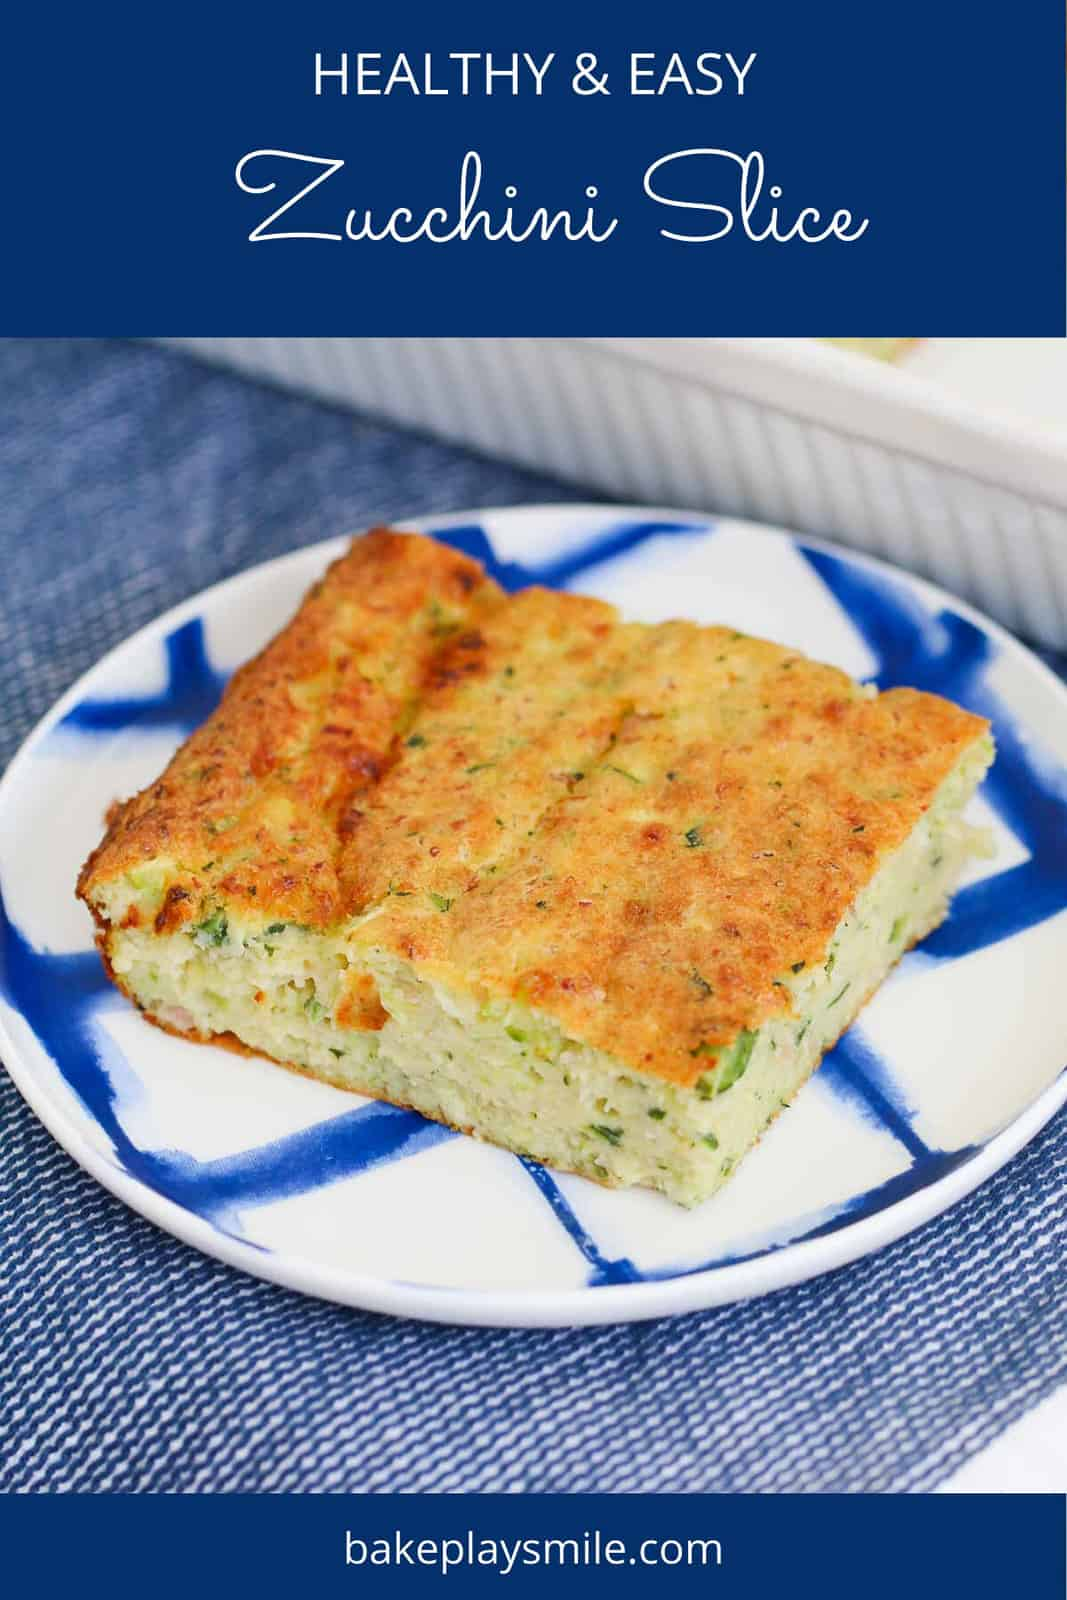 A piece of homemade zucchini slice on a blue and white plate.